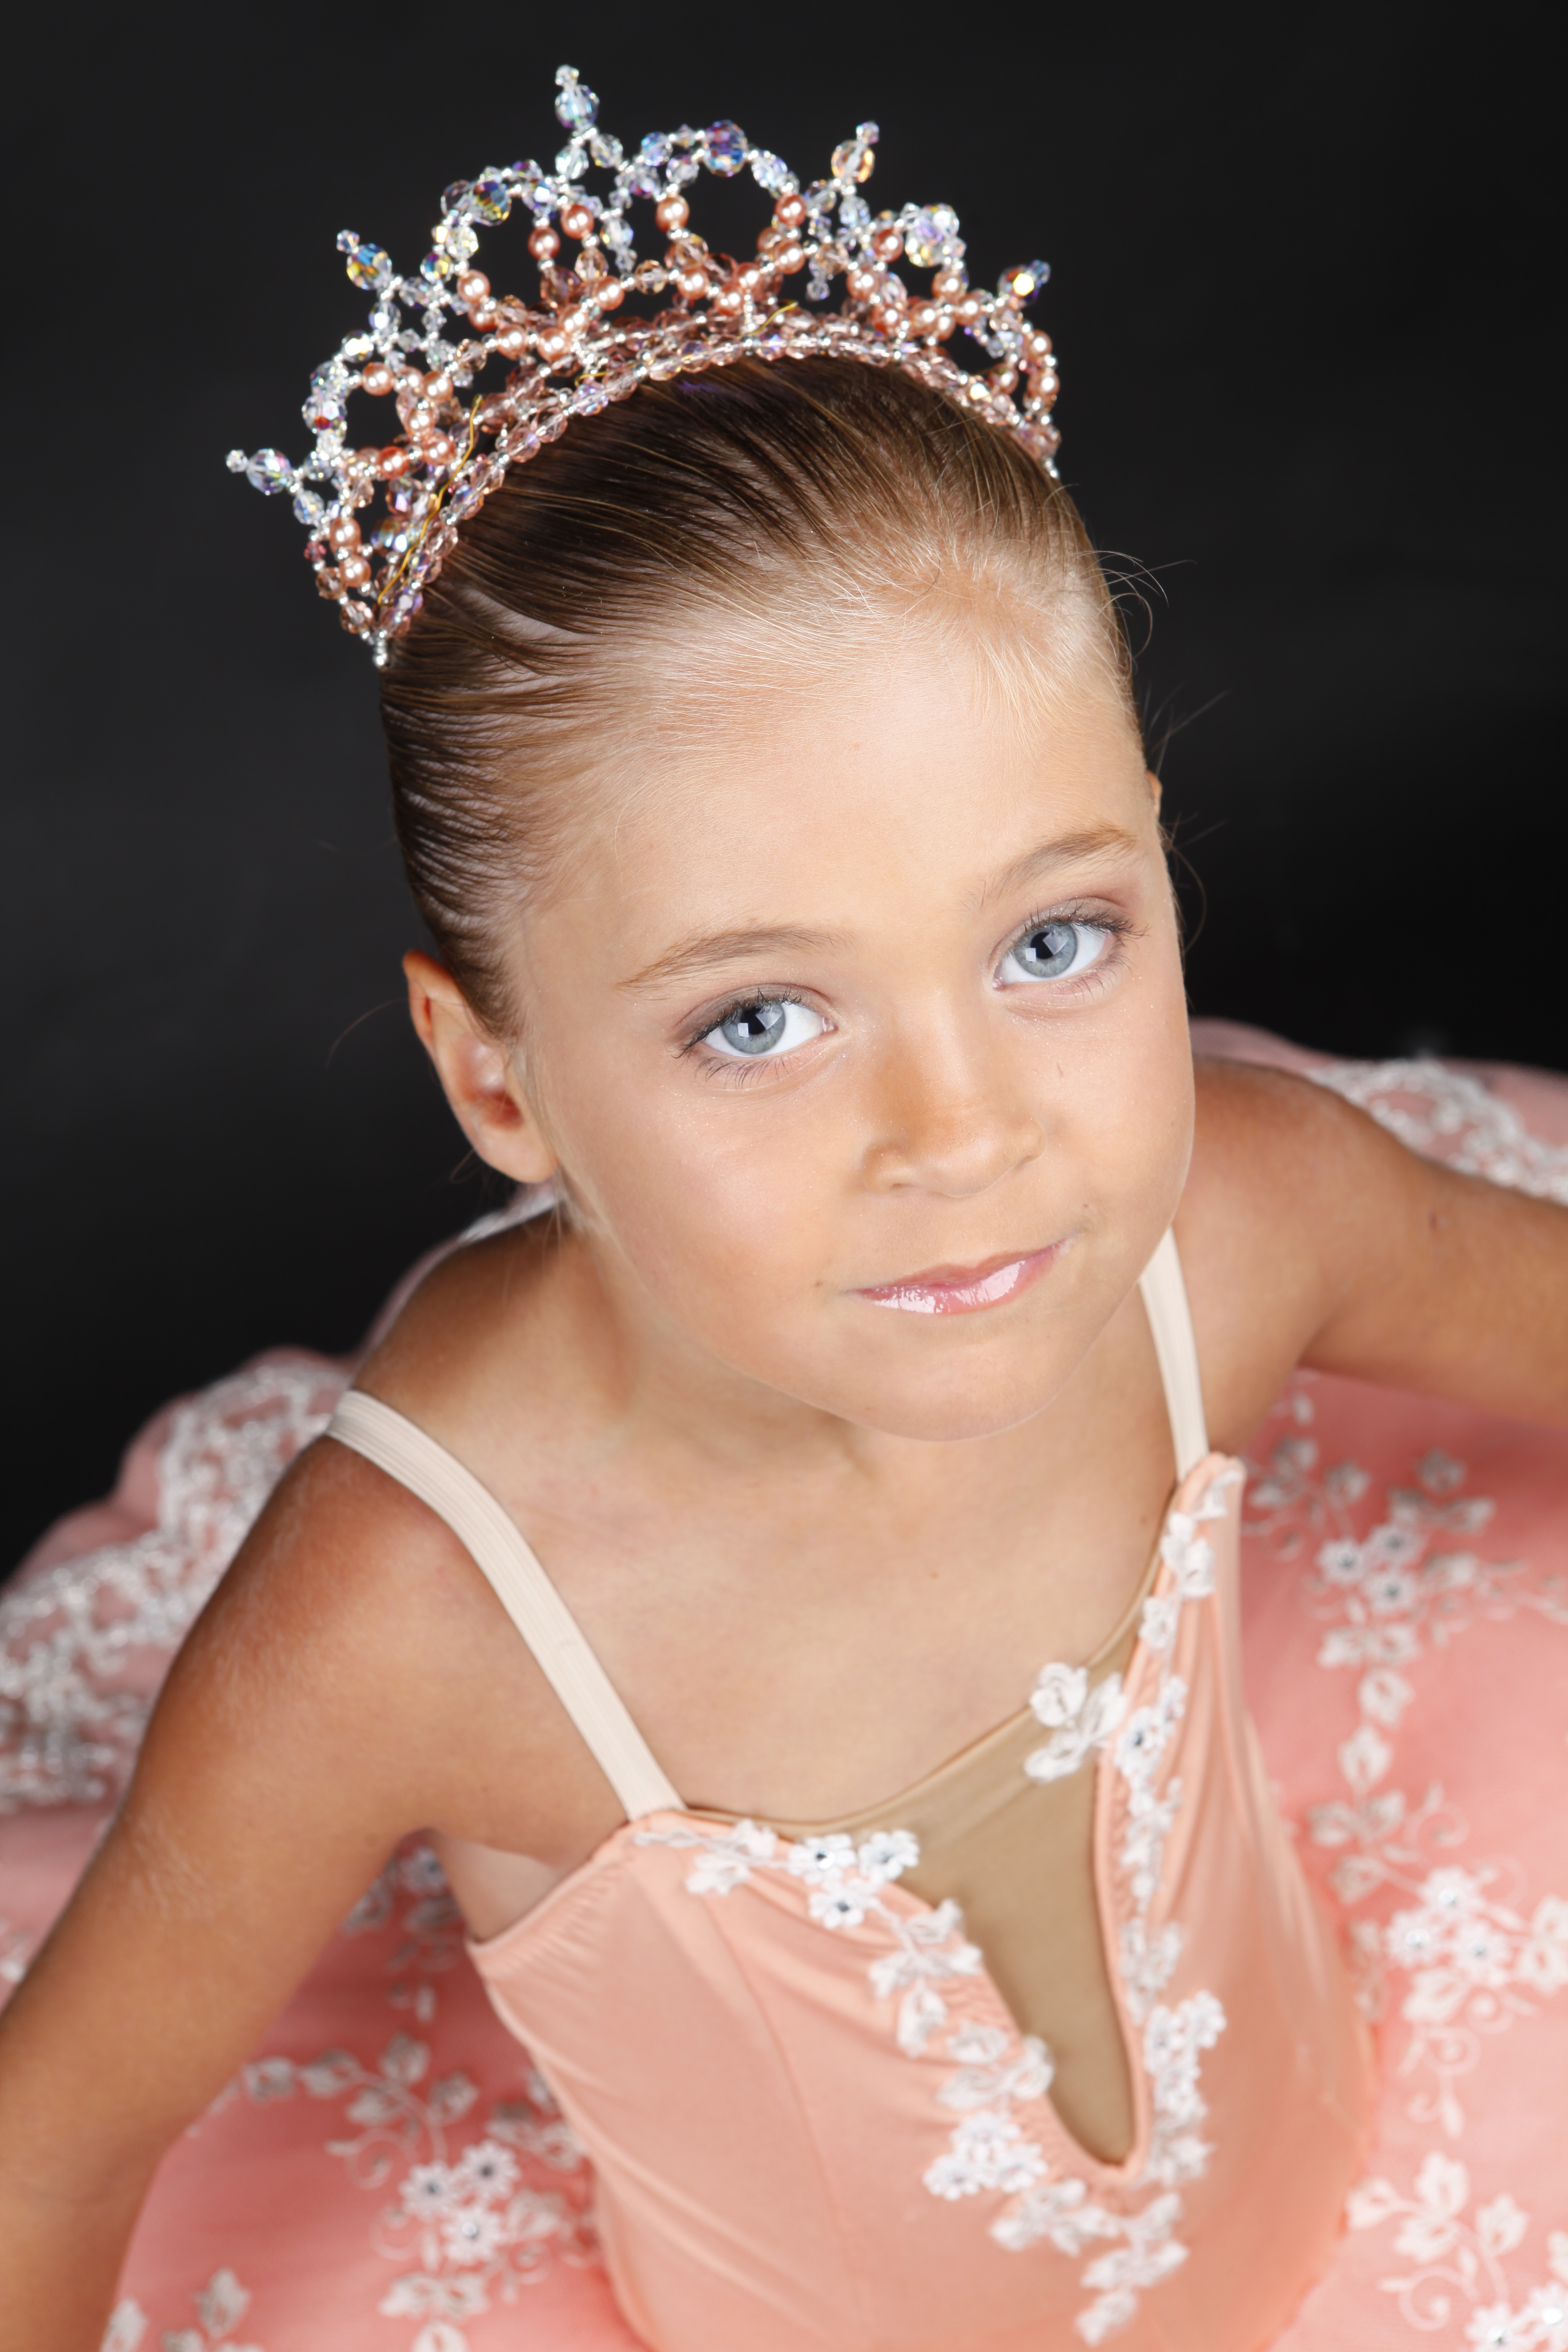 Colour matching our tiaras designs with your tutu